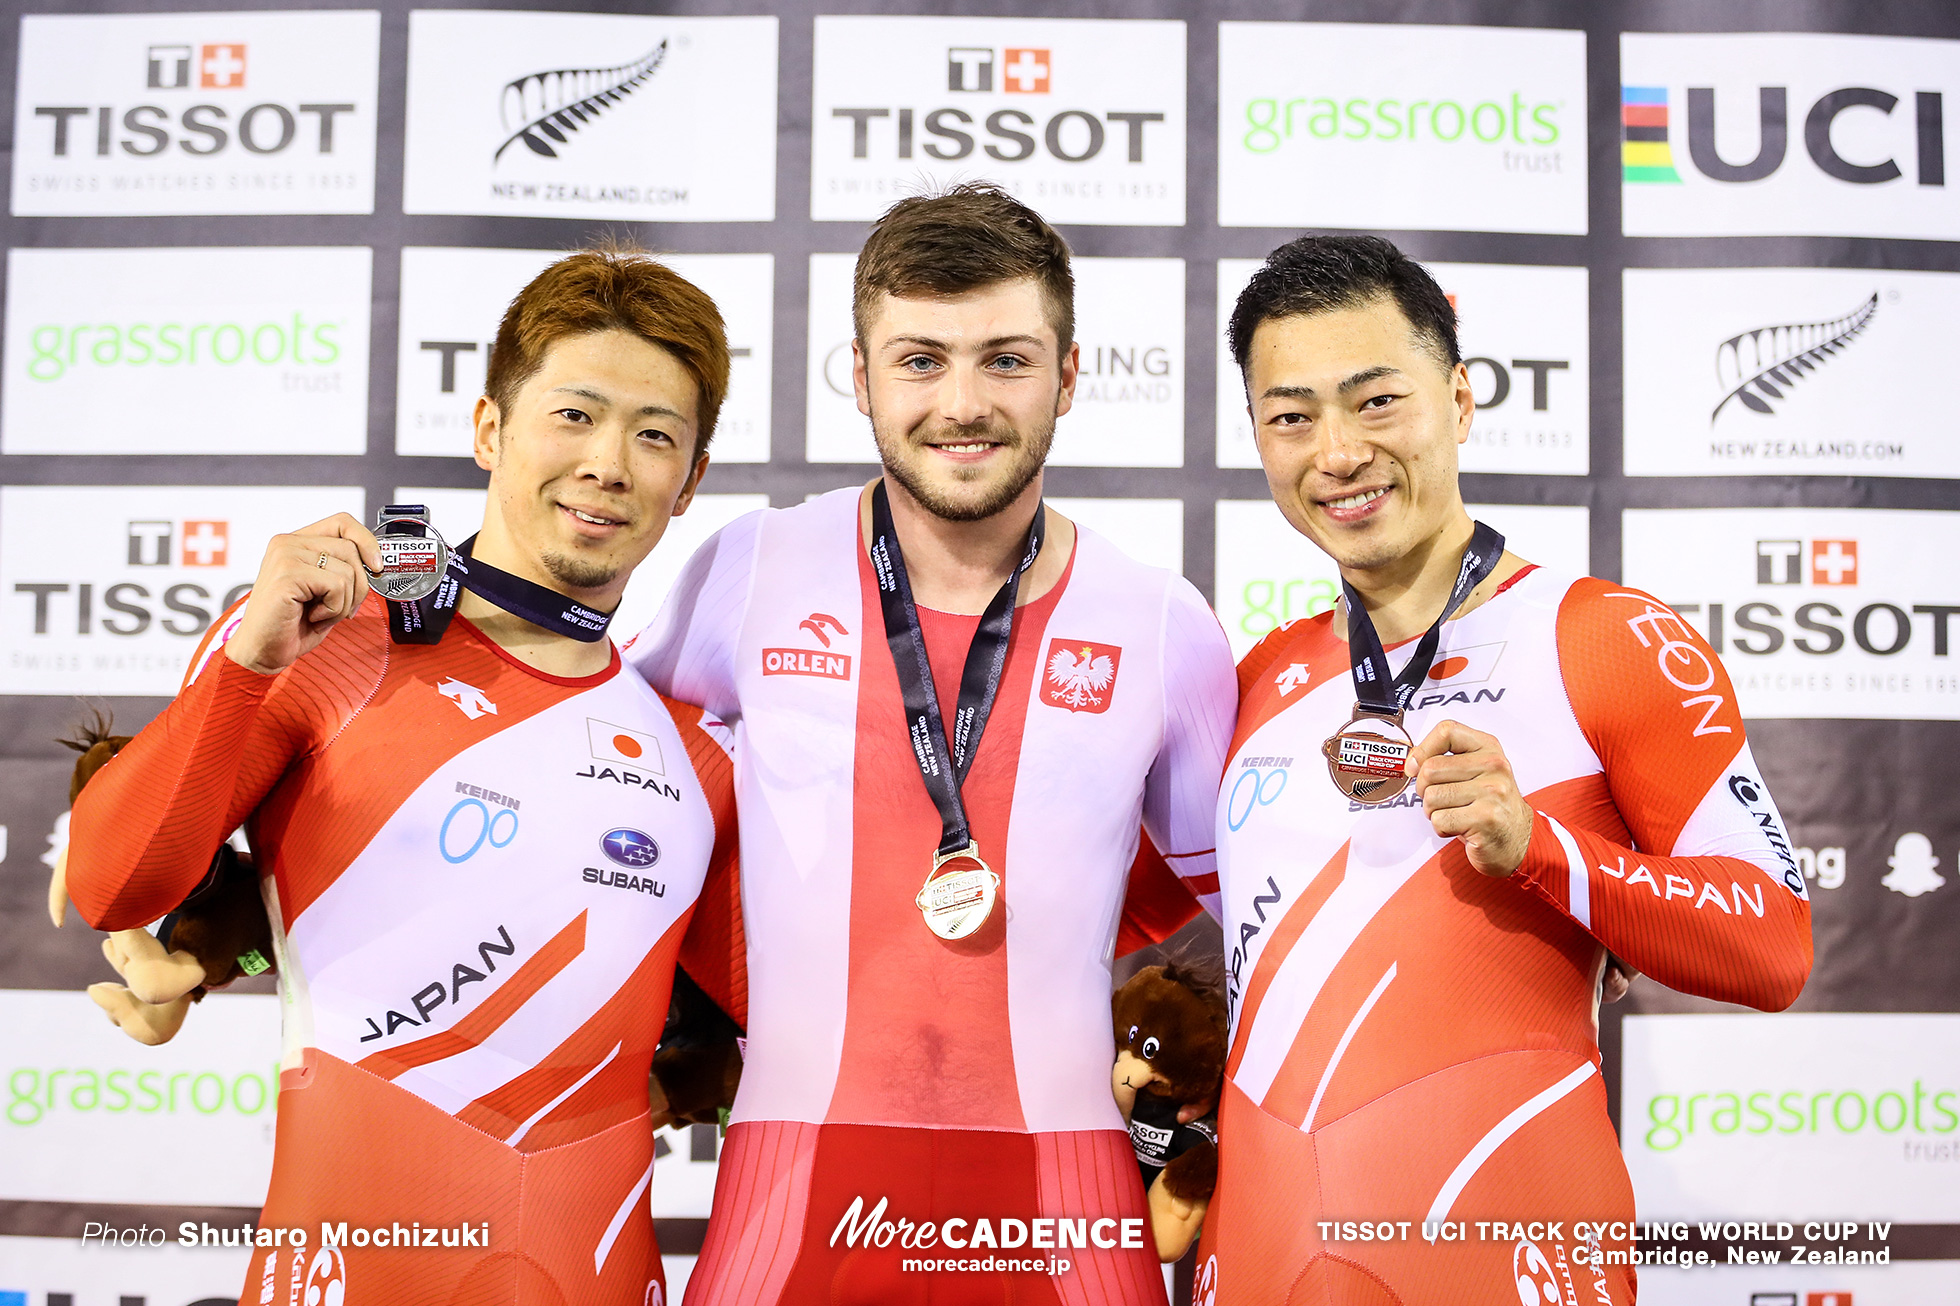 Final / Men's Sprint / TISSOT UCI TRACK CYCLING WORLD CUP IV, Cambridge, New Zealand, Mateusz Rudyk マテウス・ルディク 深谷知広 新田祐大